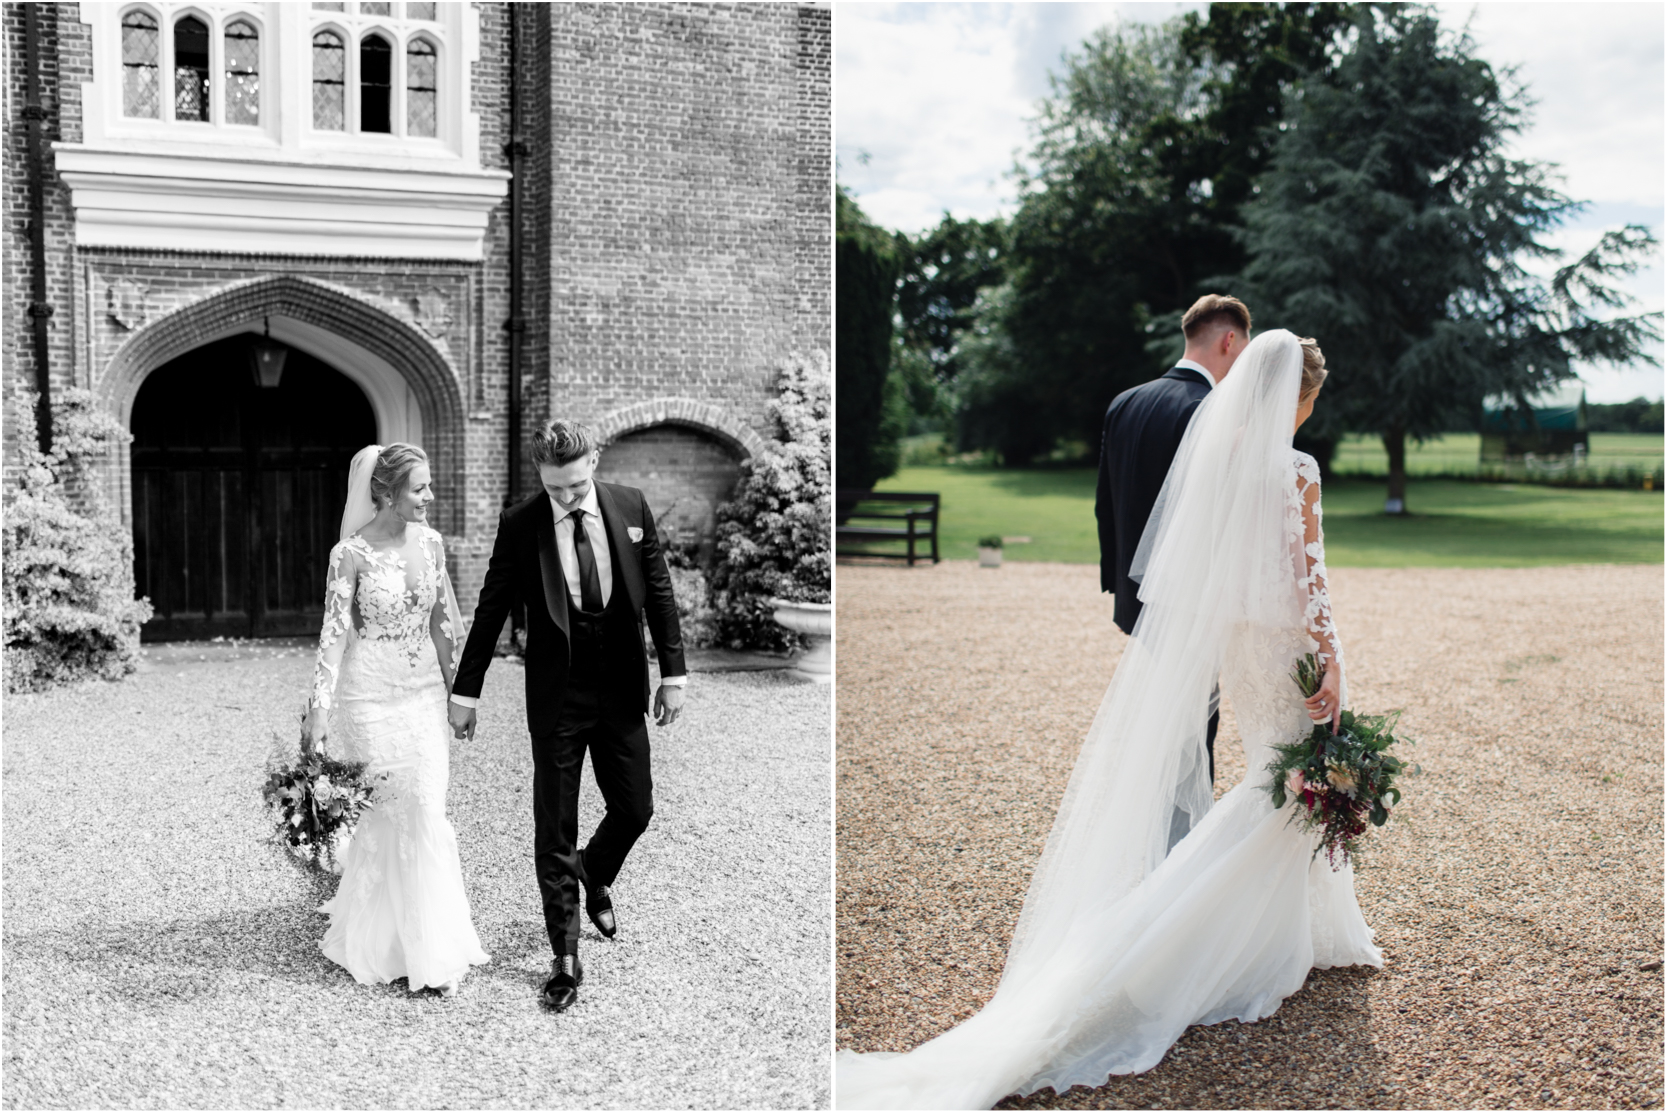 Gosfield Hall Wedding Photography Surrey Luxury Photographer 55.jpg